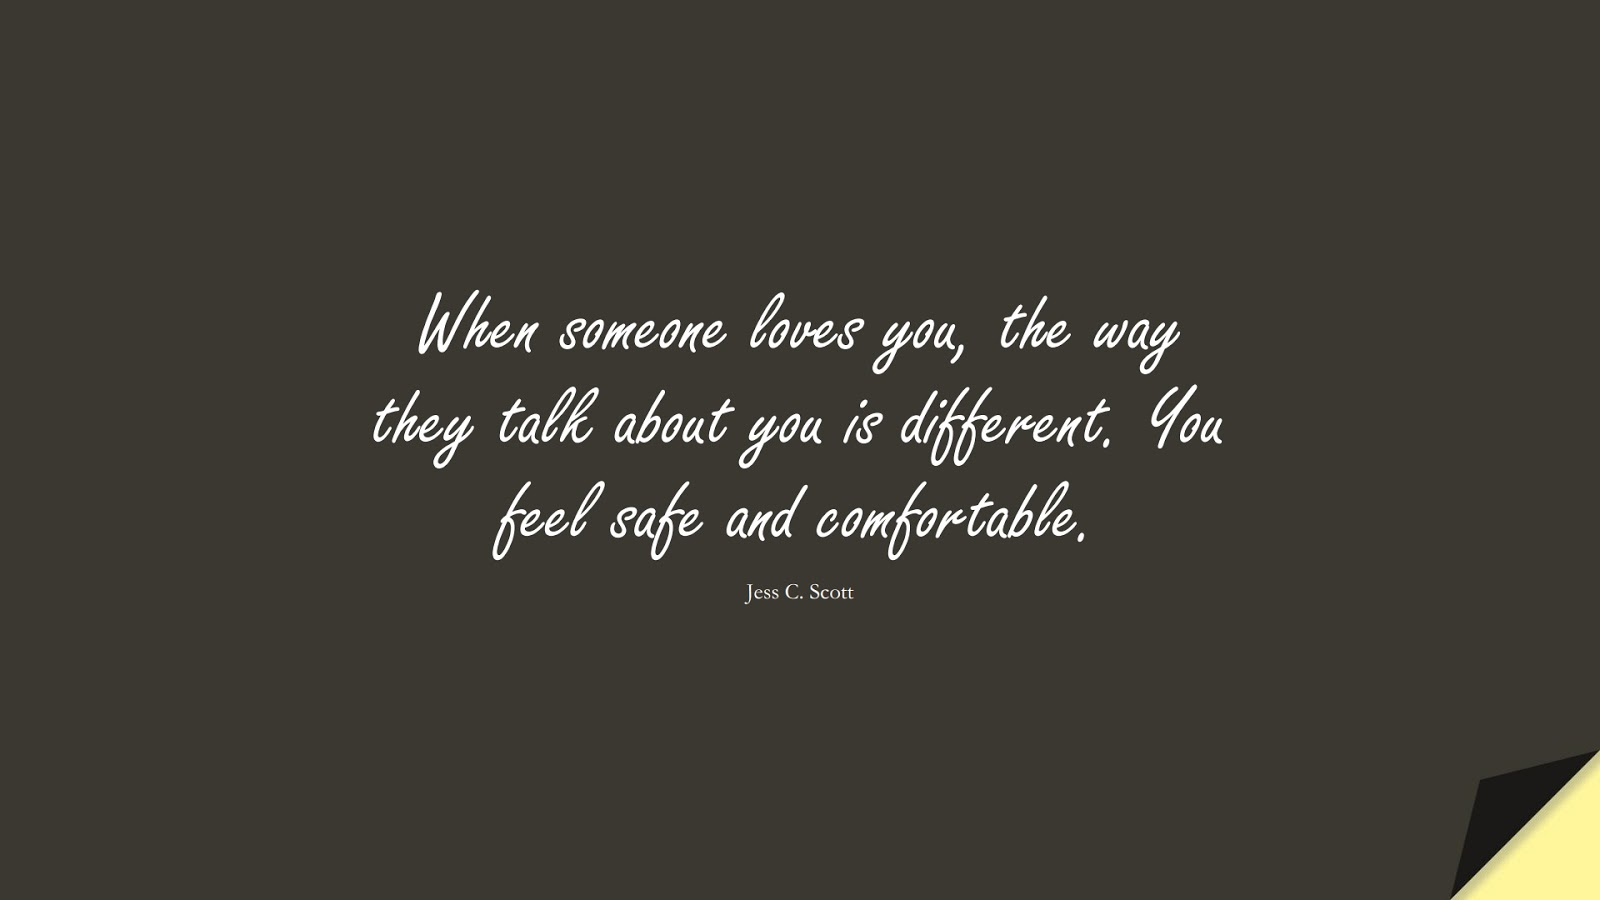 When someone loves you, the way they talk about you is different. You feel safe and comfortable. (Jess C. Scott);  #LoveQuotes